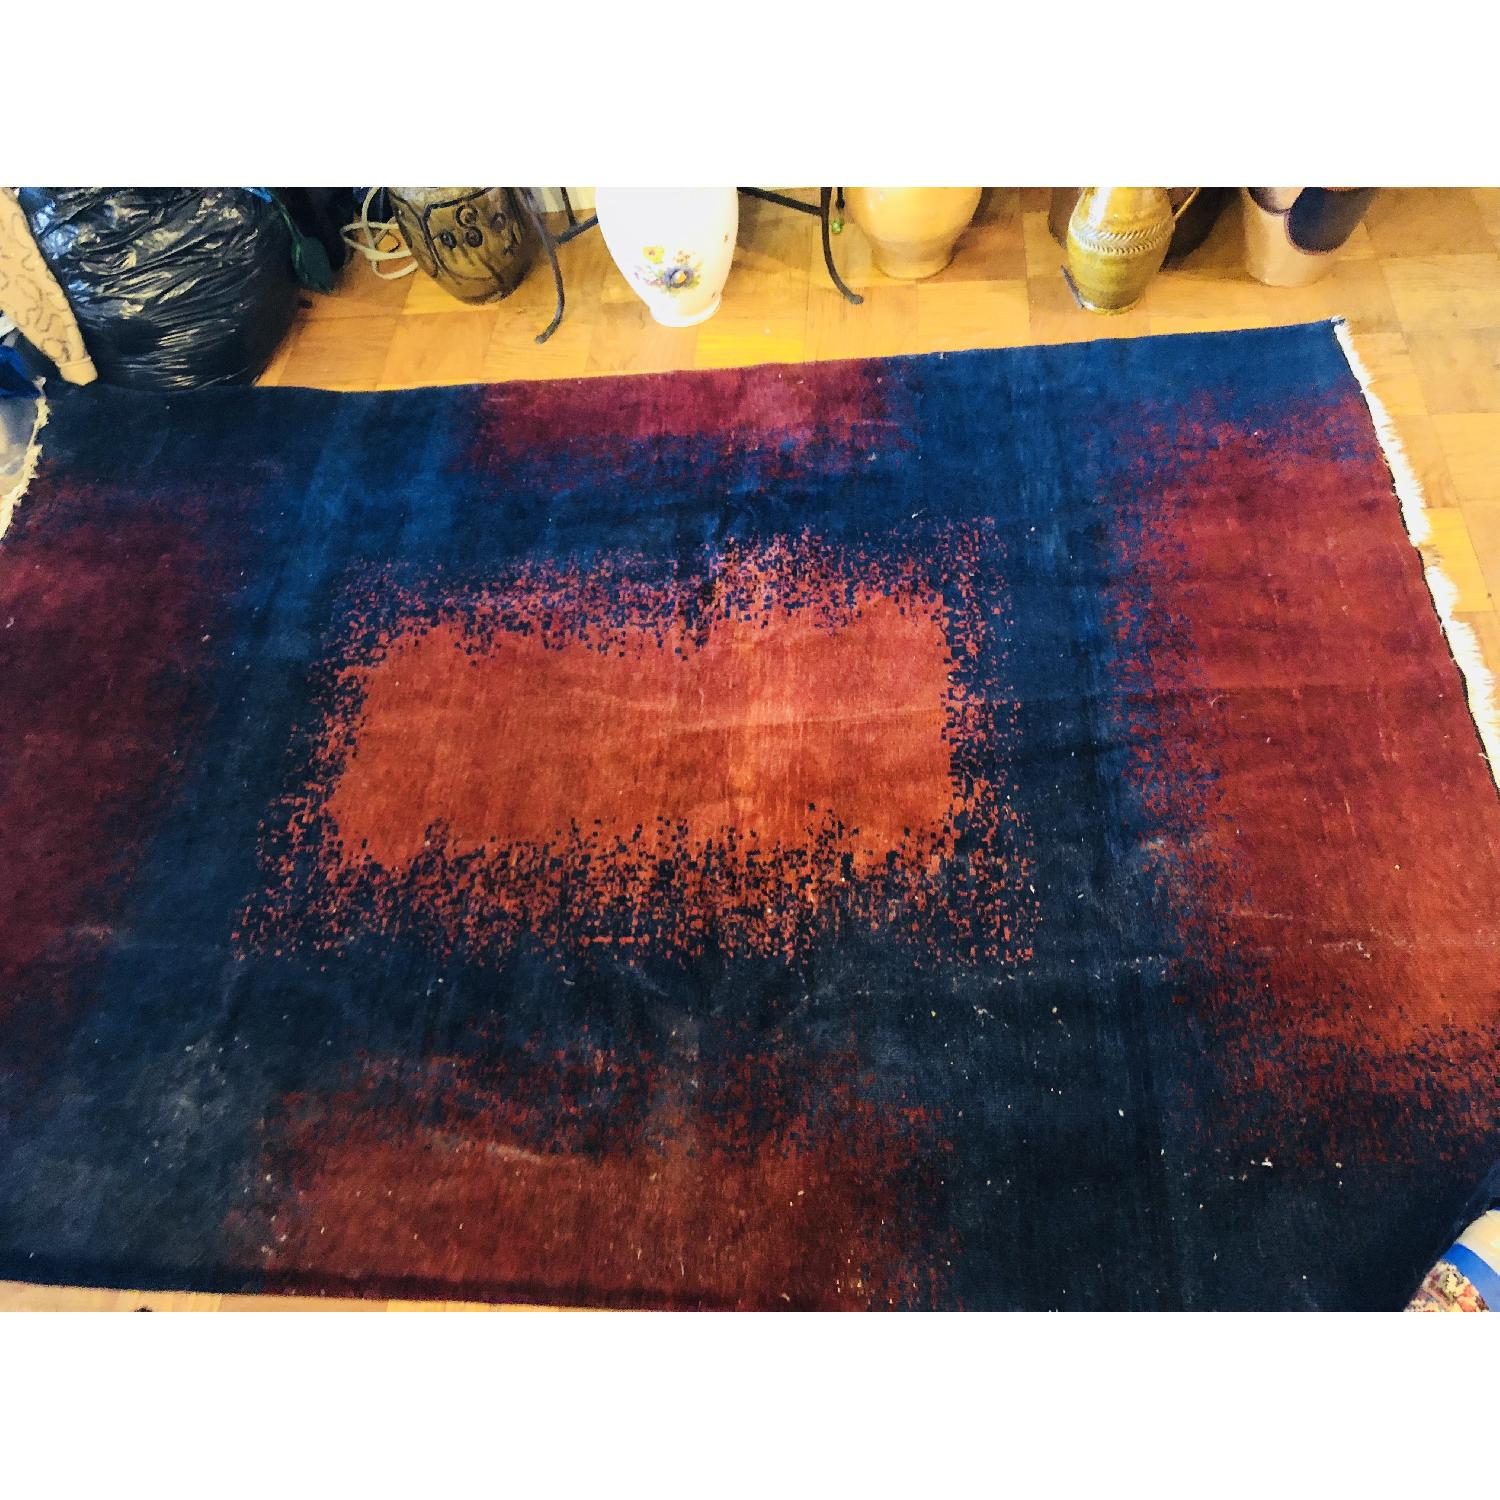 ABC Carpet and Home Modern Blue Area Rug w/ Red Patterns - image-5